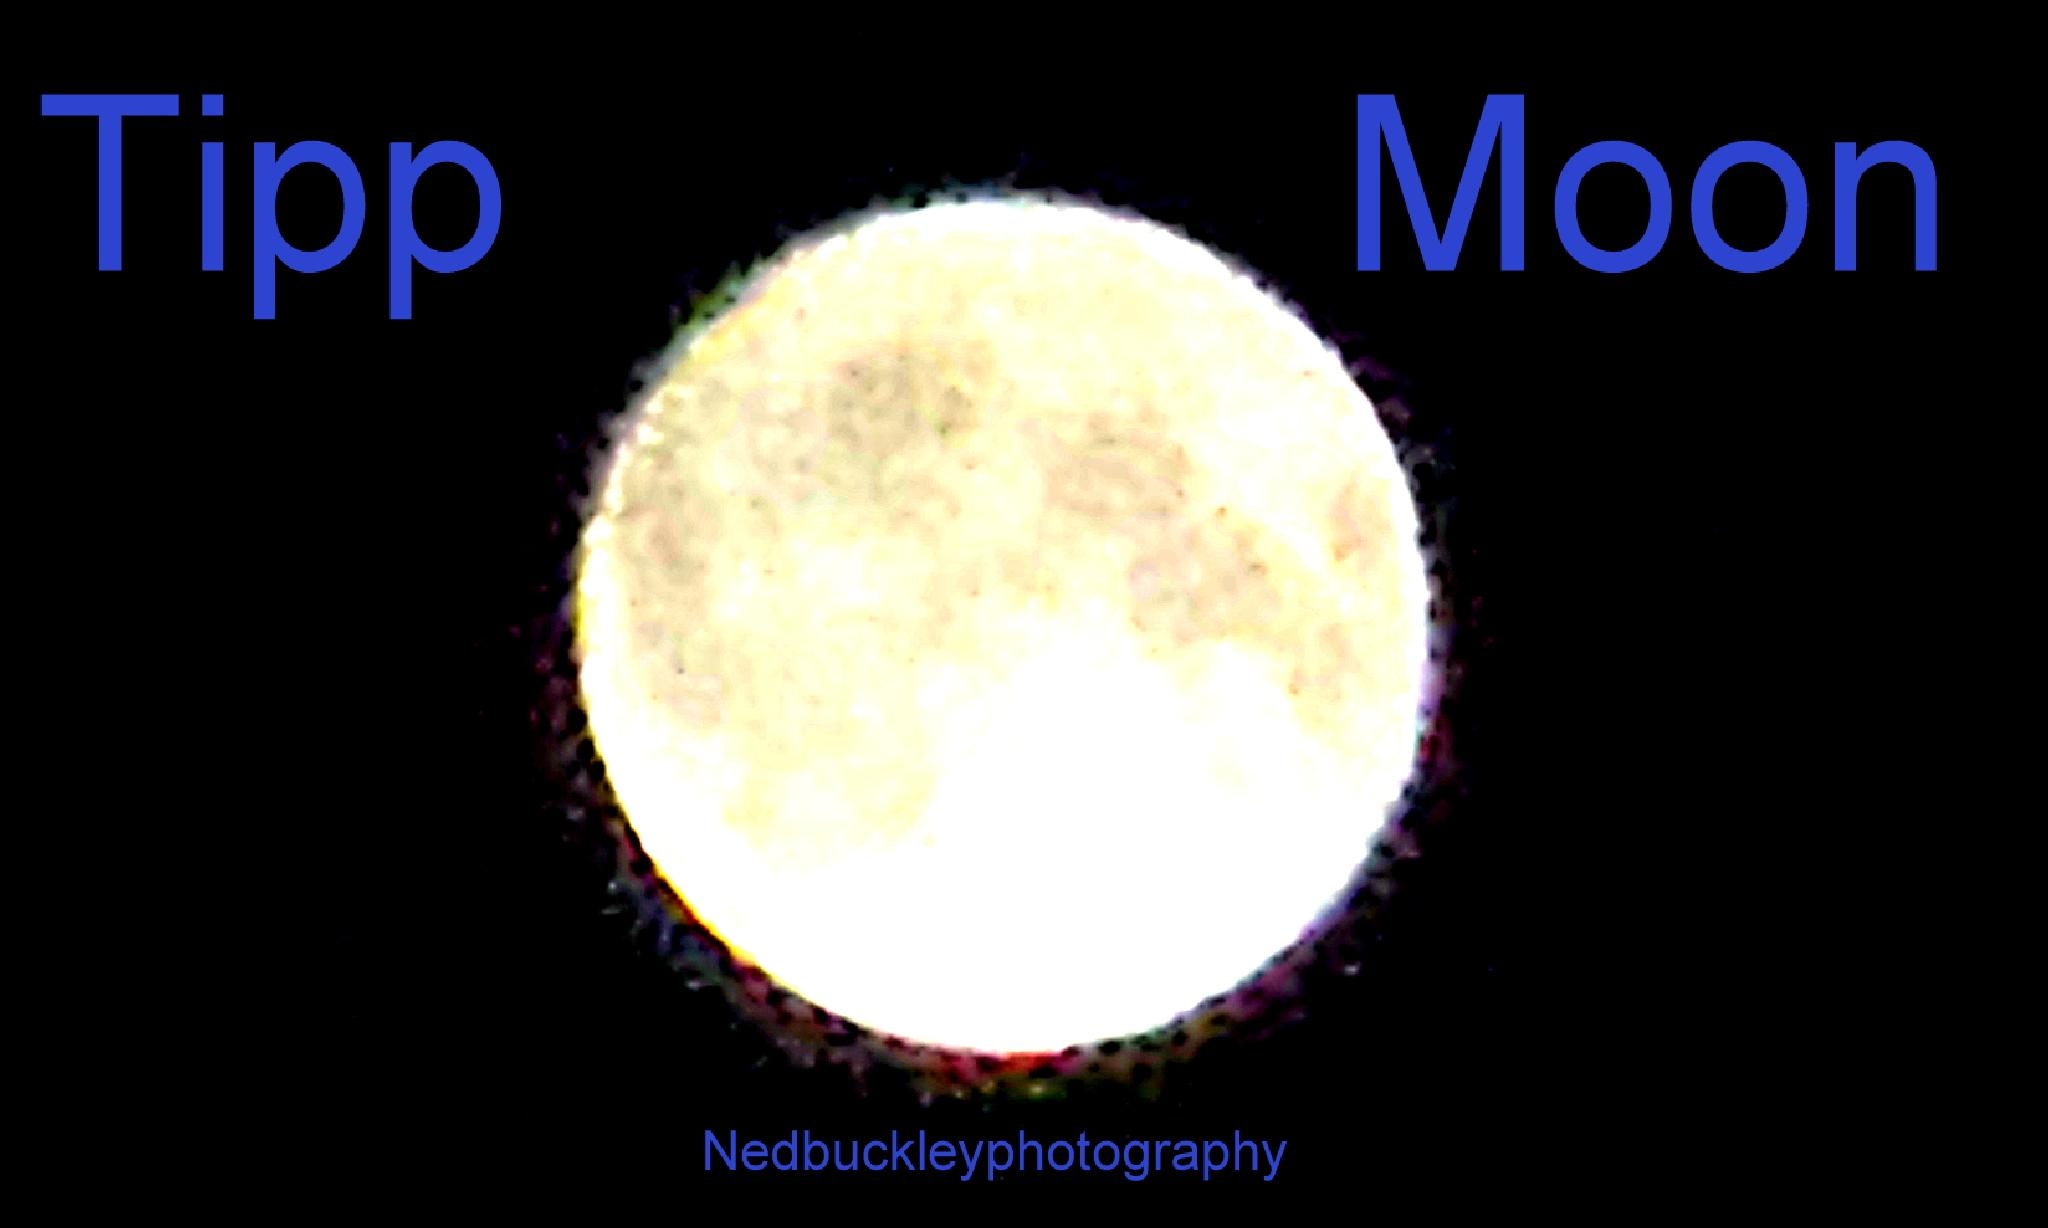 The Moon by Nedbuckleyphotography